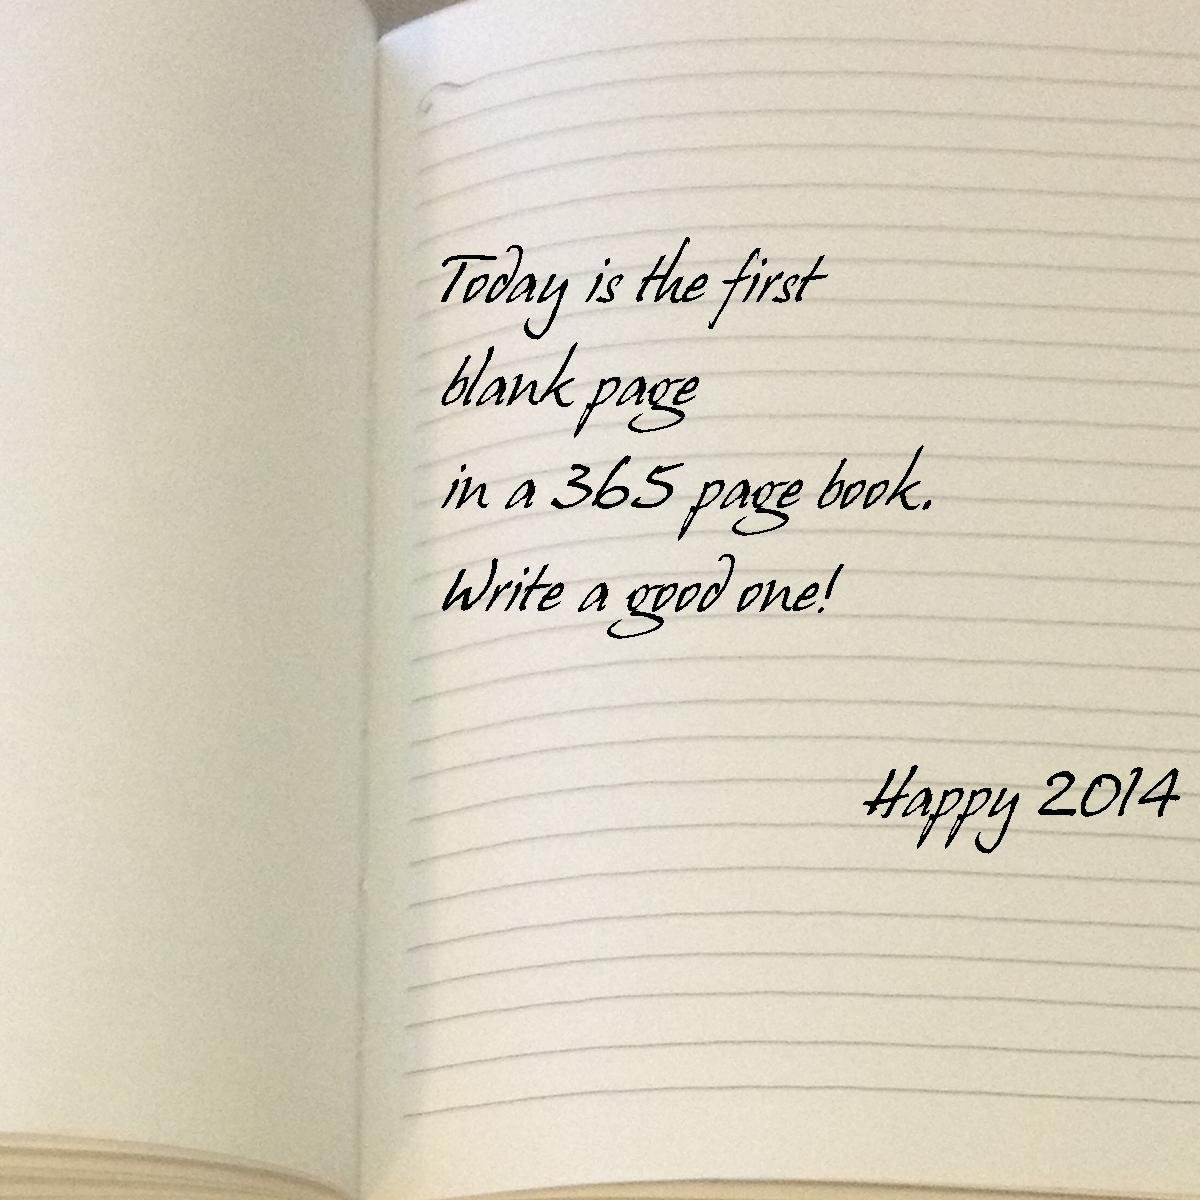 today is the first blank page